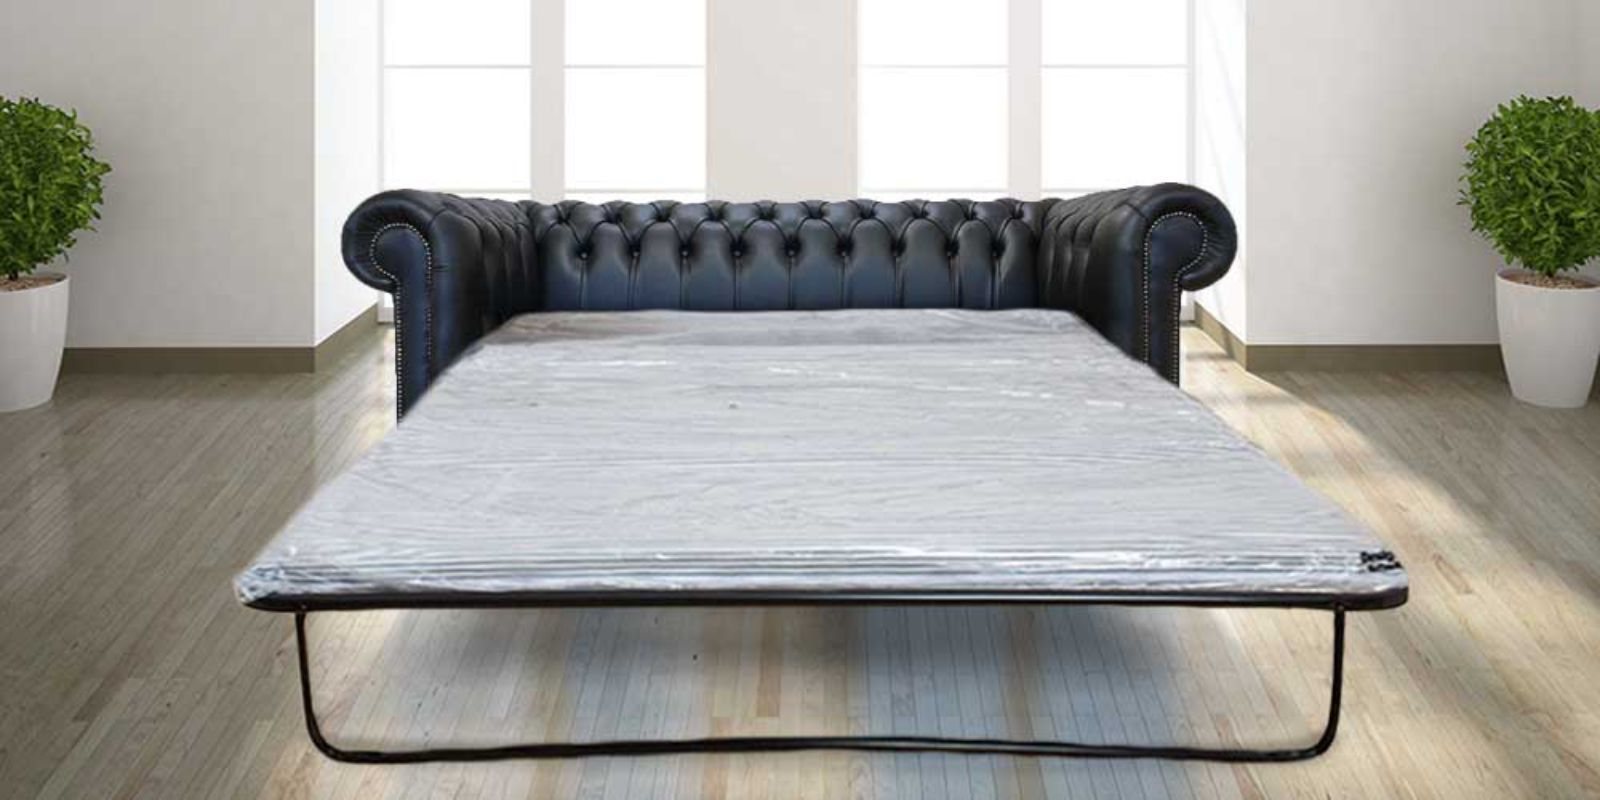 Image of Chesterfield 3 Seater Black Leather SofaBed Offer